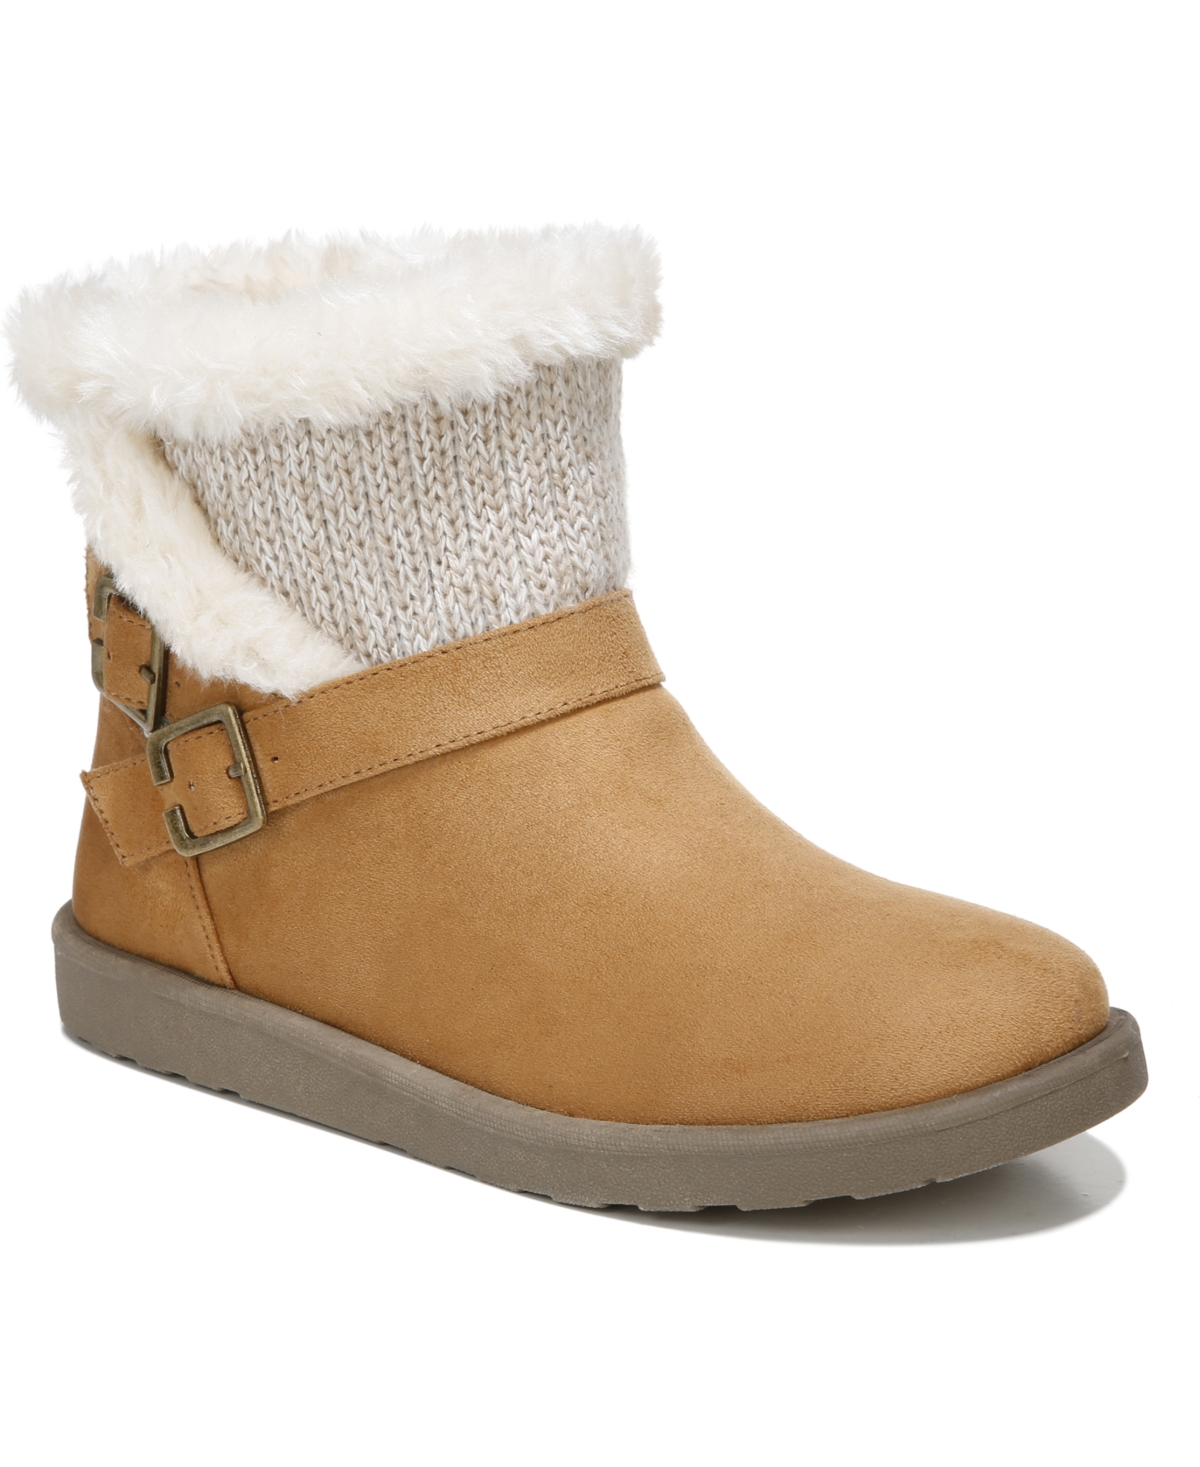 LifeStride Flurry Cold Weather Boots Women's Shoes